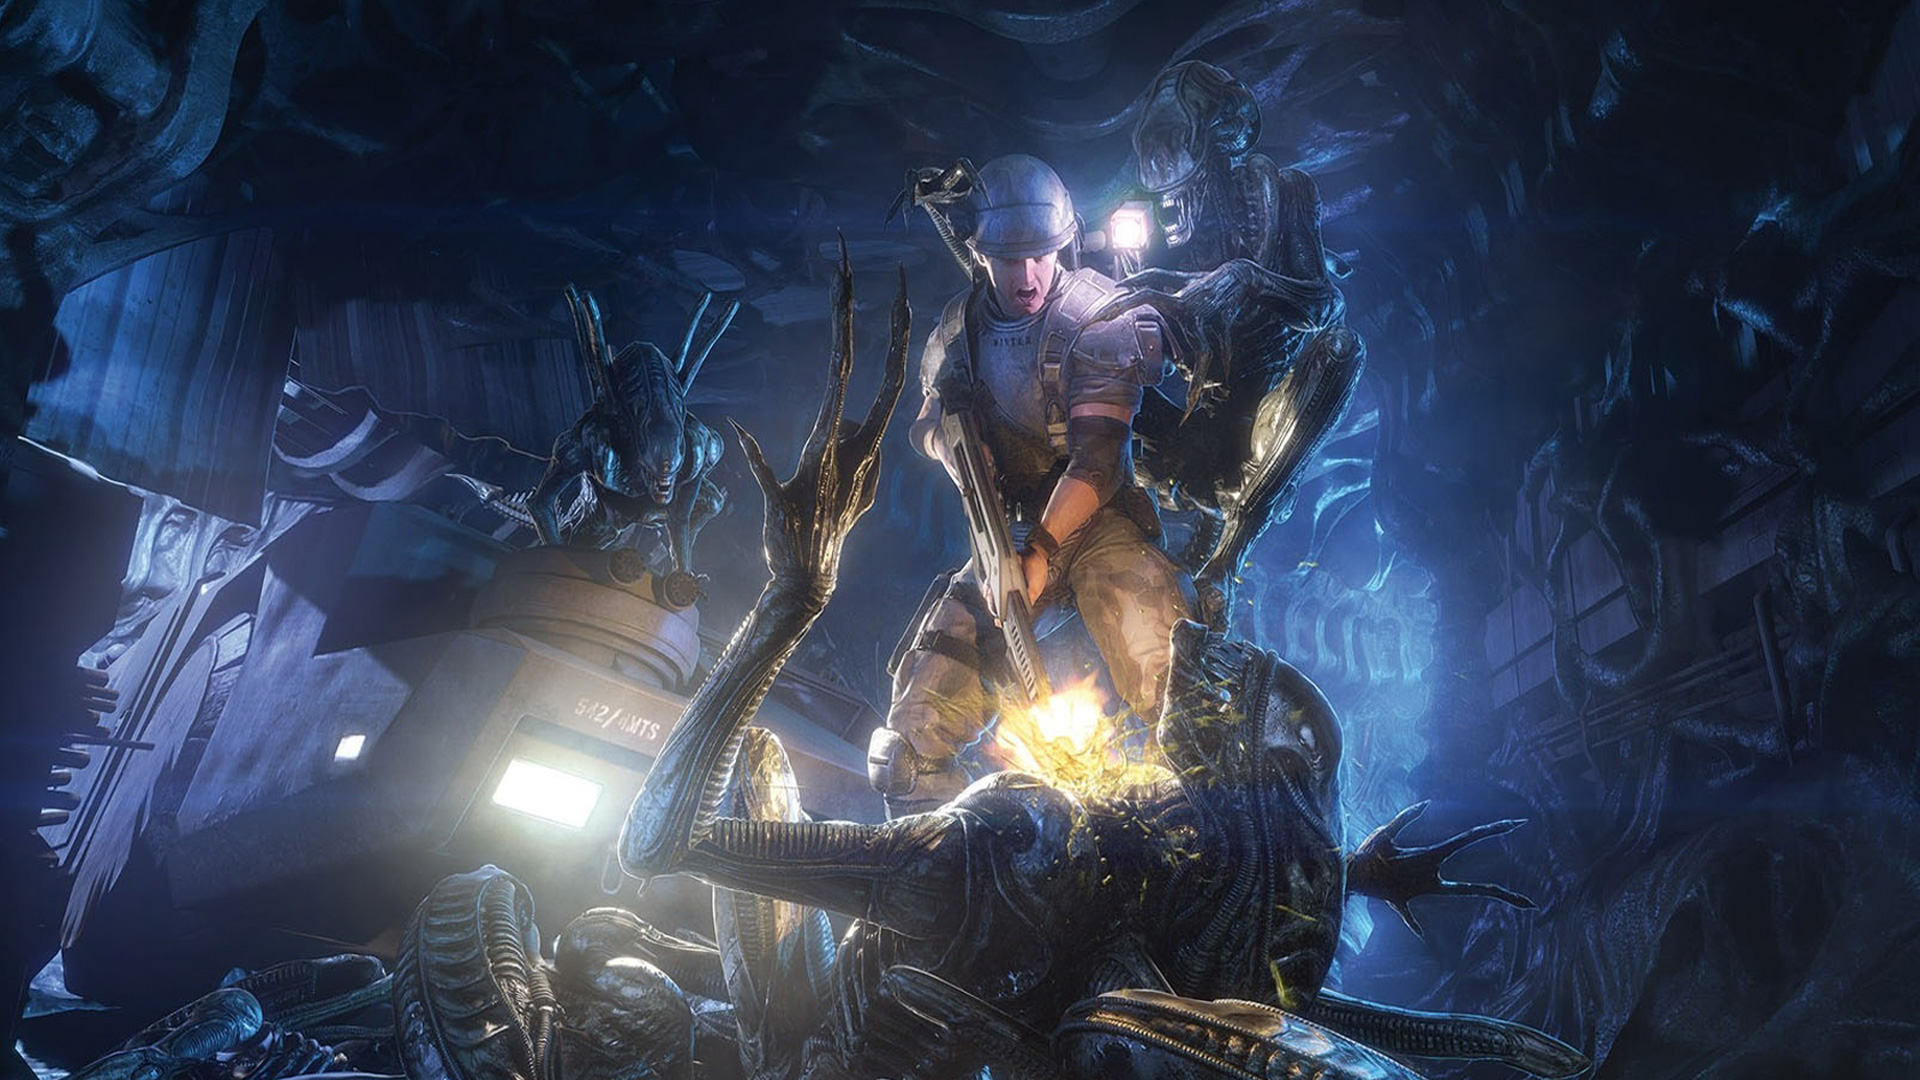 Free Aliens: Colonial Marines Wallpaper in 1920x1080